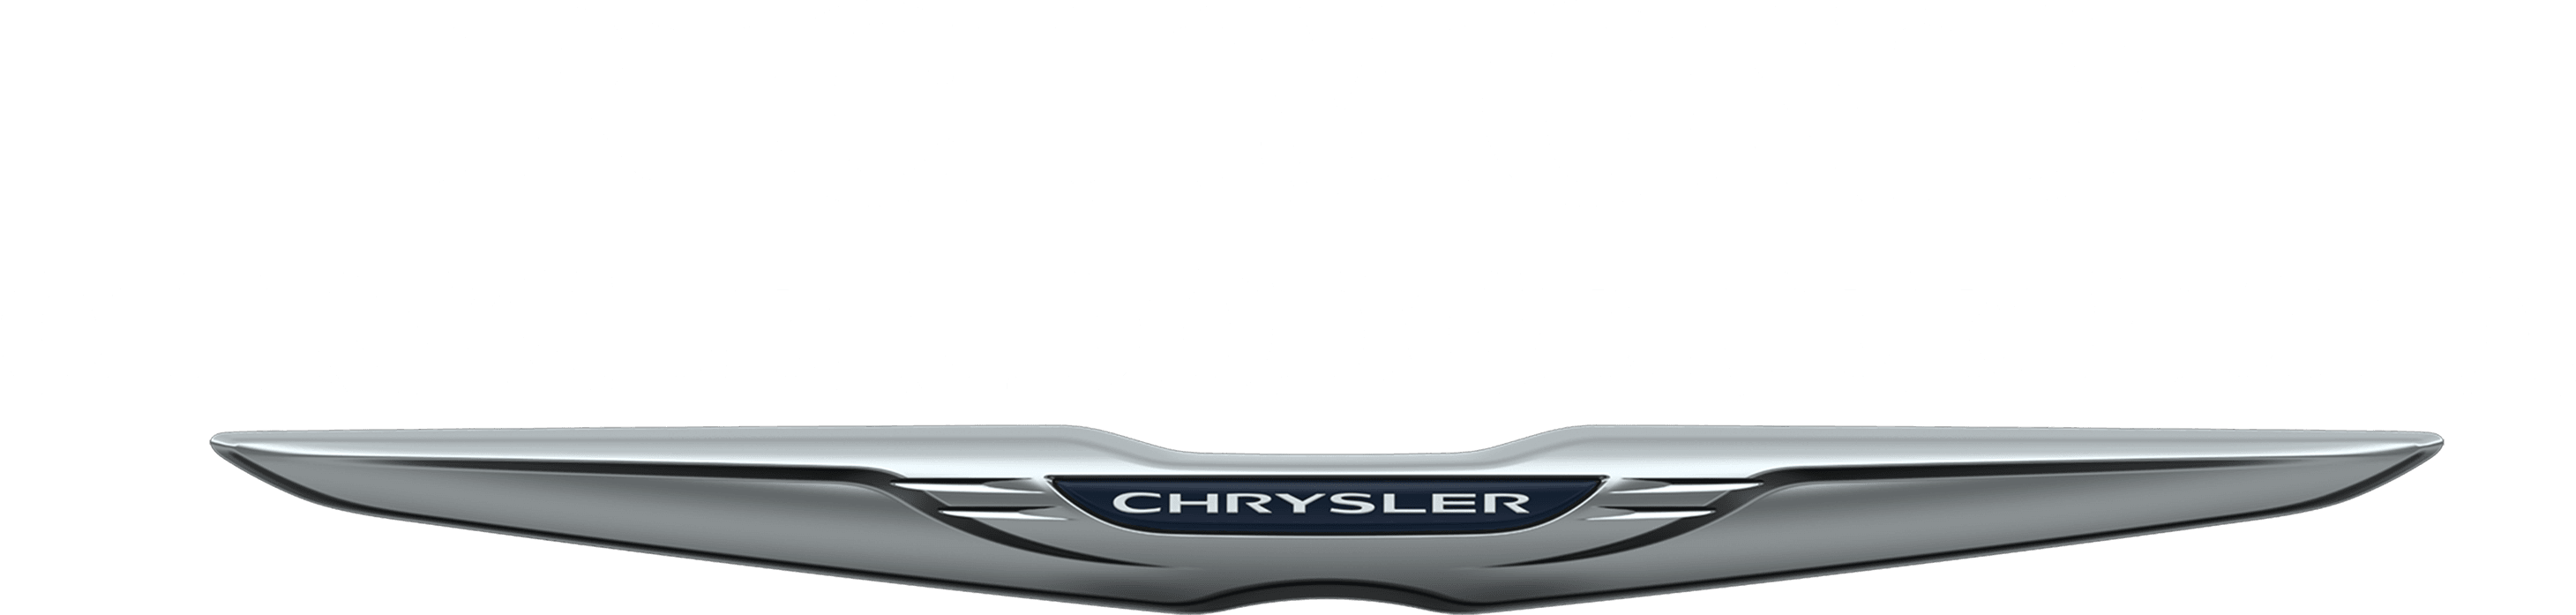 Richmond Chrysler logo